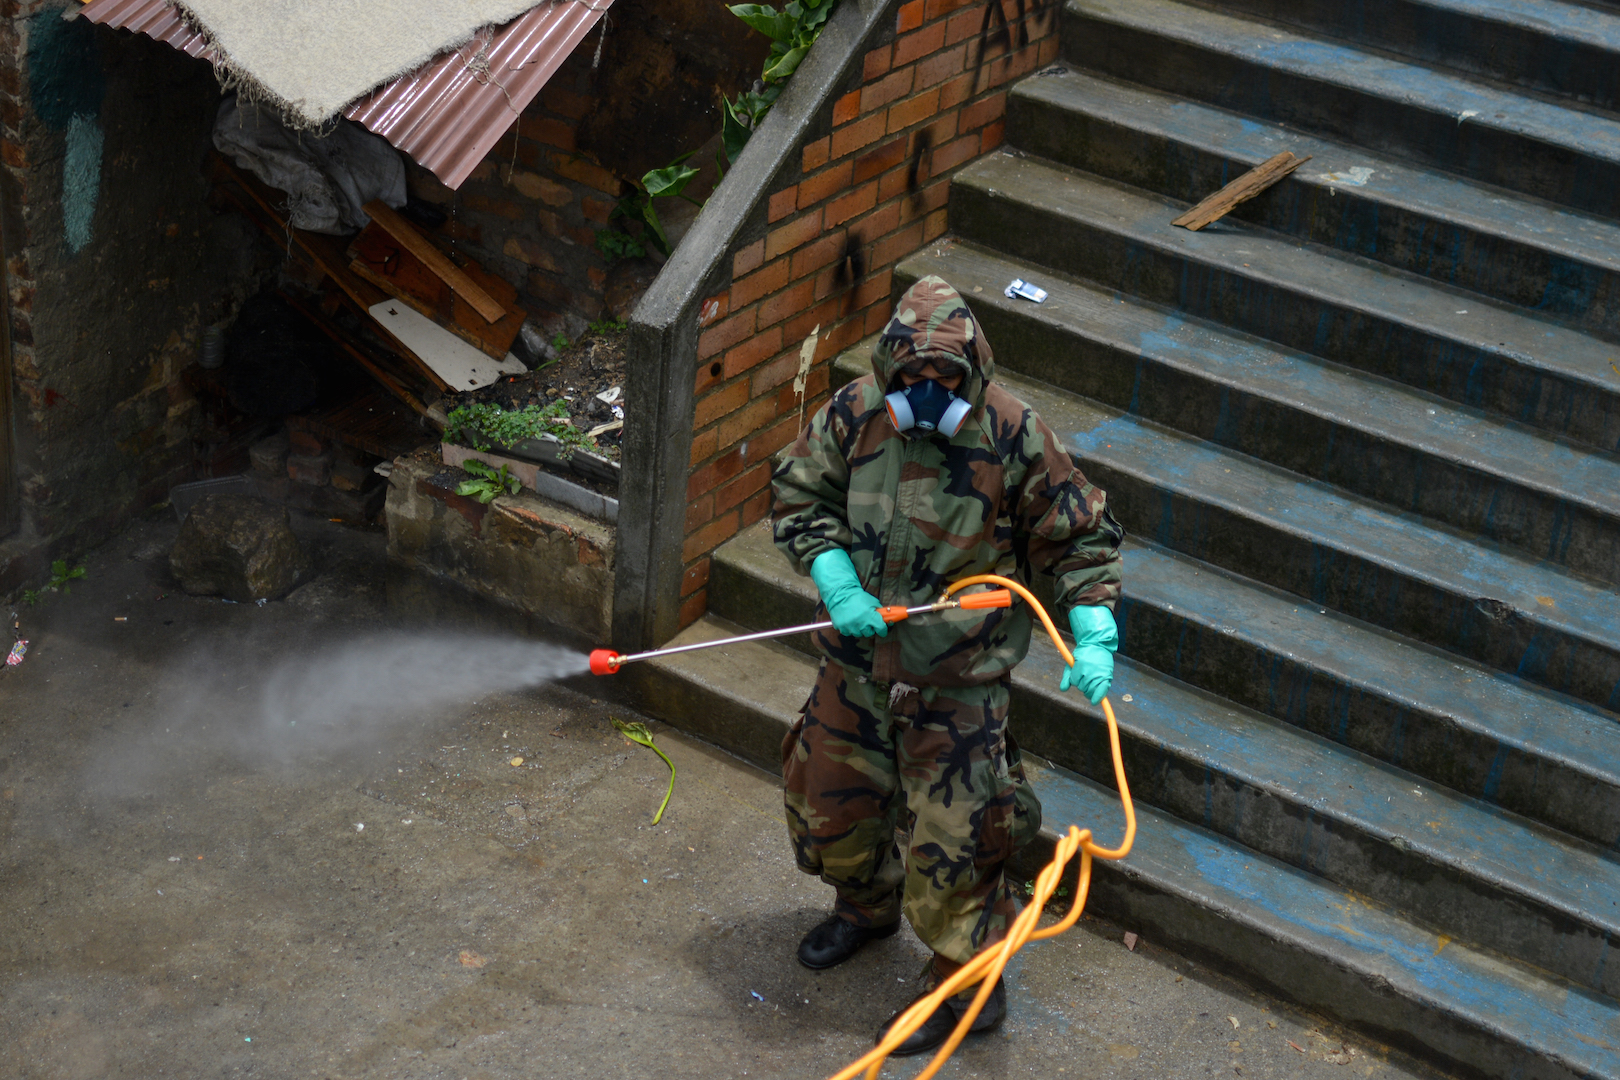 national_army_makes_disinfection_in_bogota_martina_jimenez_abril_14_2020-24.jpg